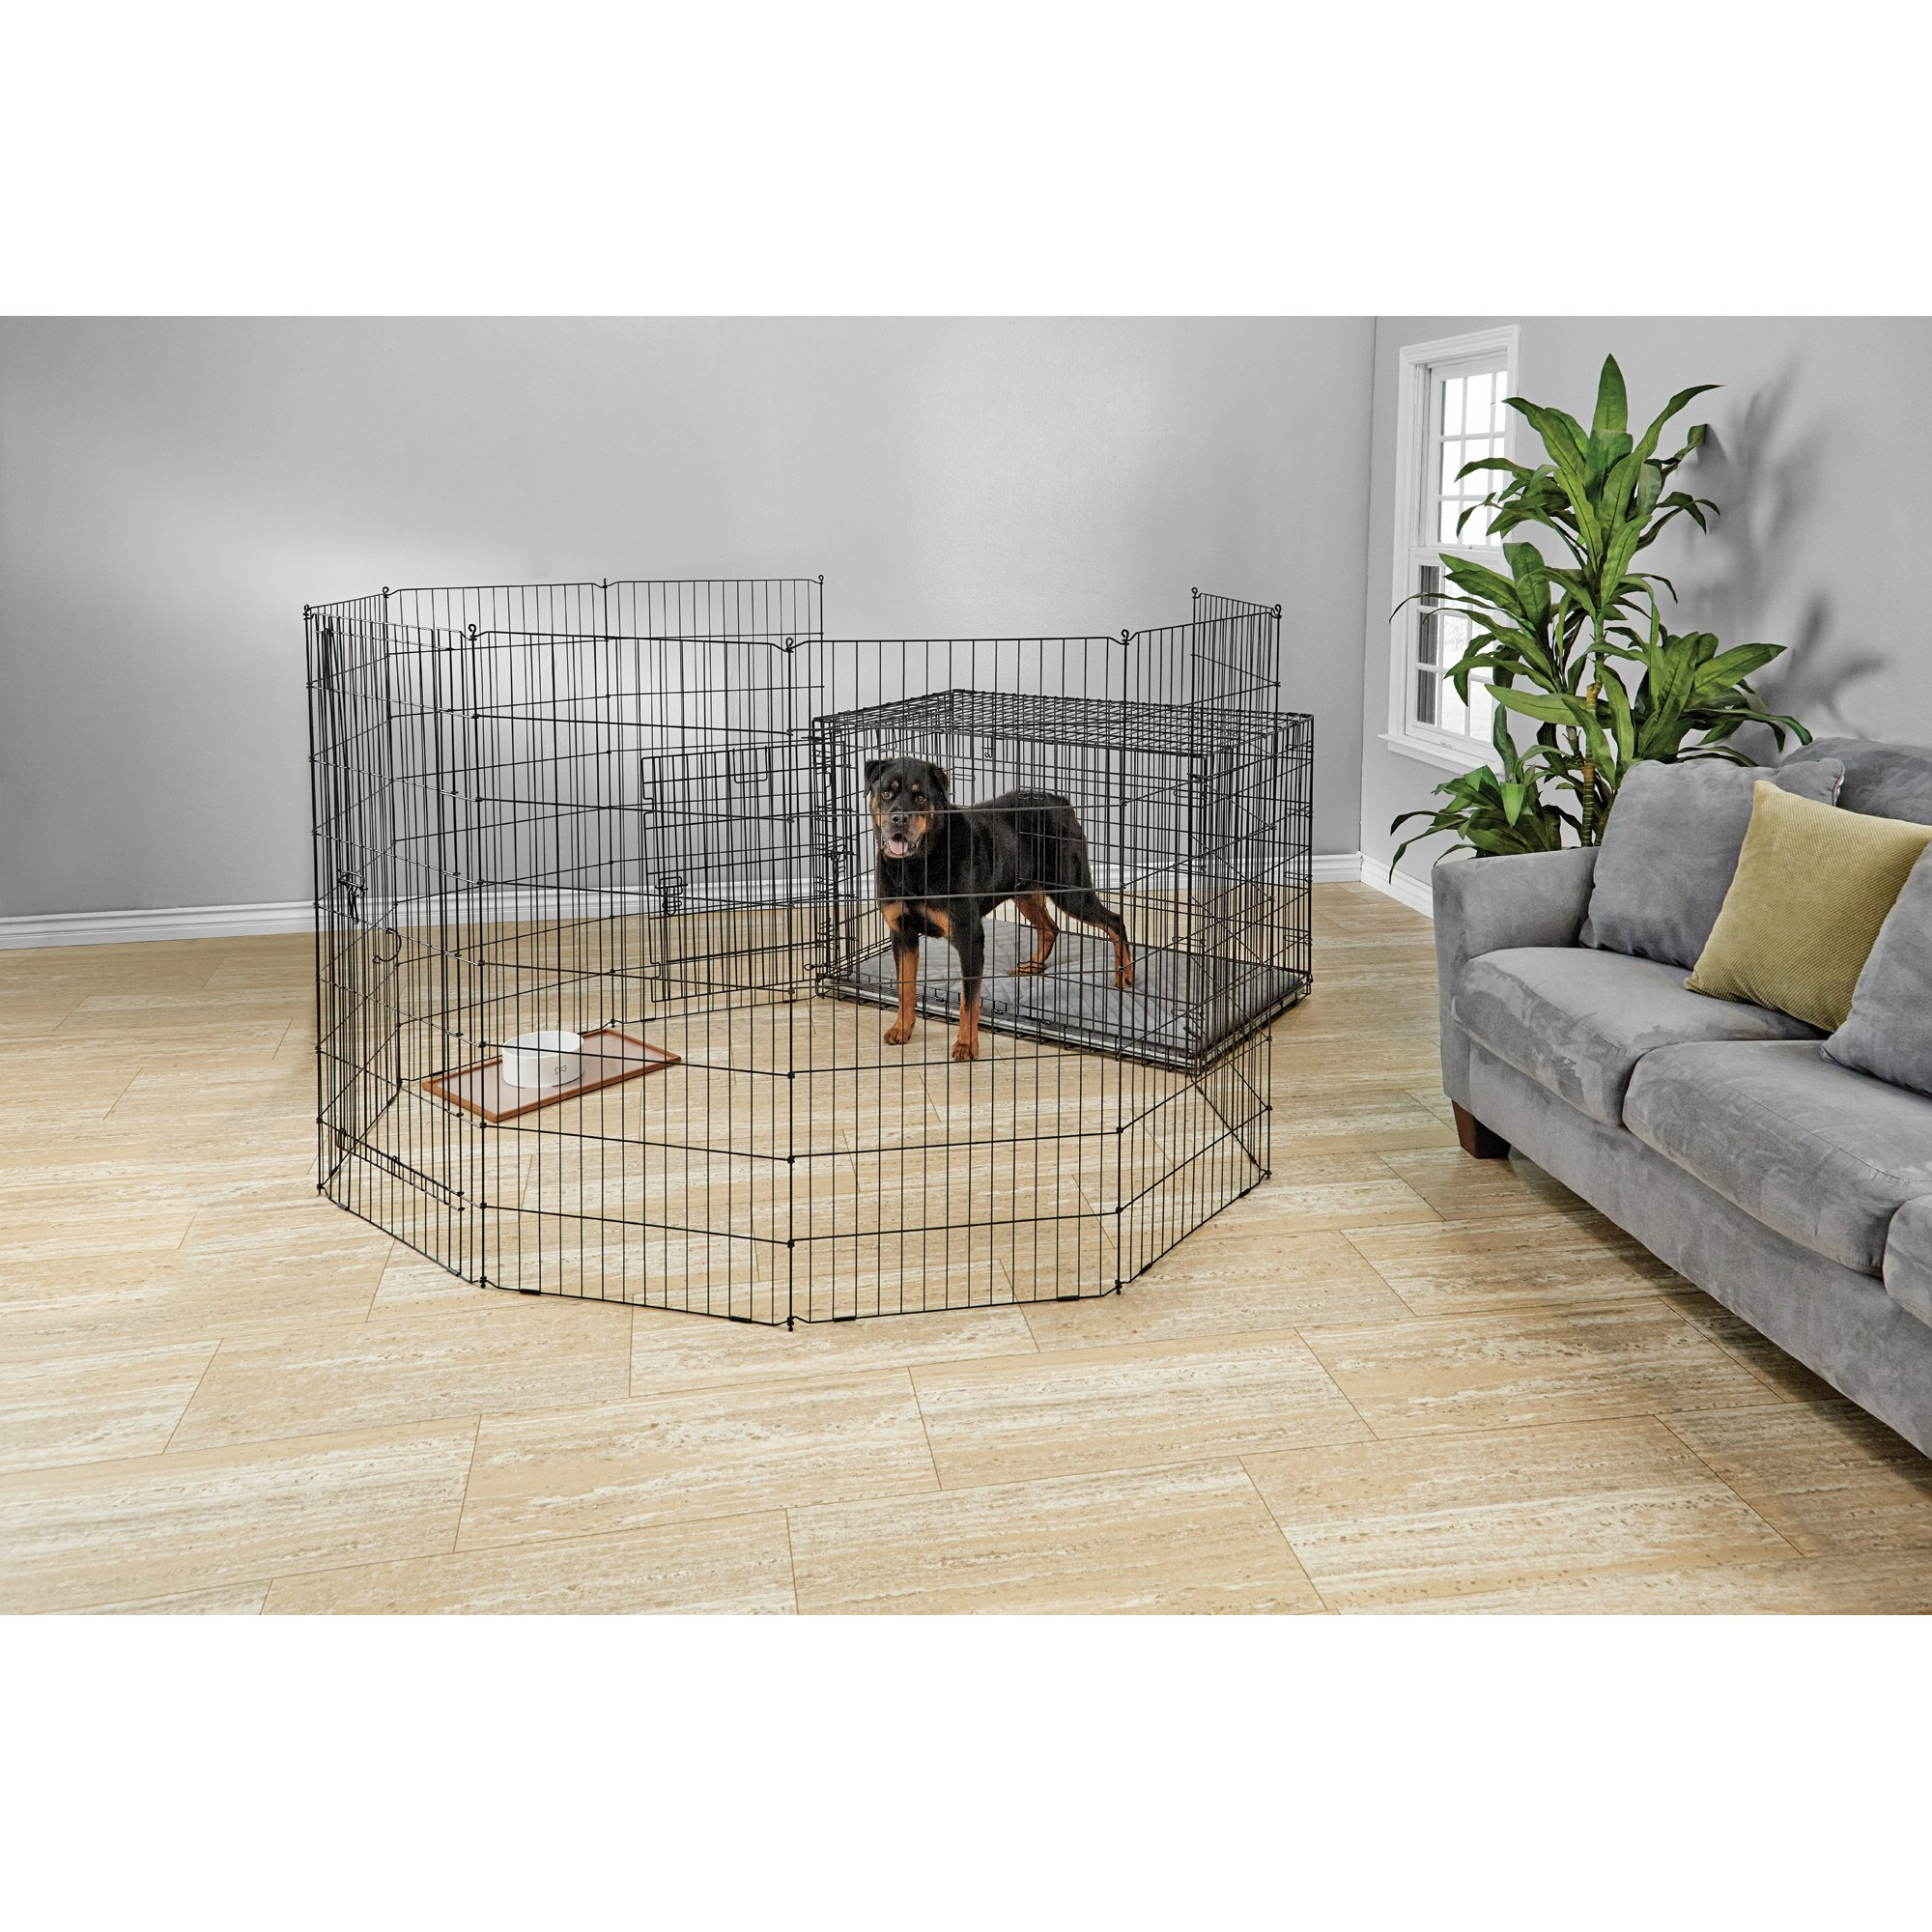 You & Me 2-Door Folding Dog Crate | Petco